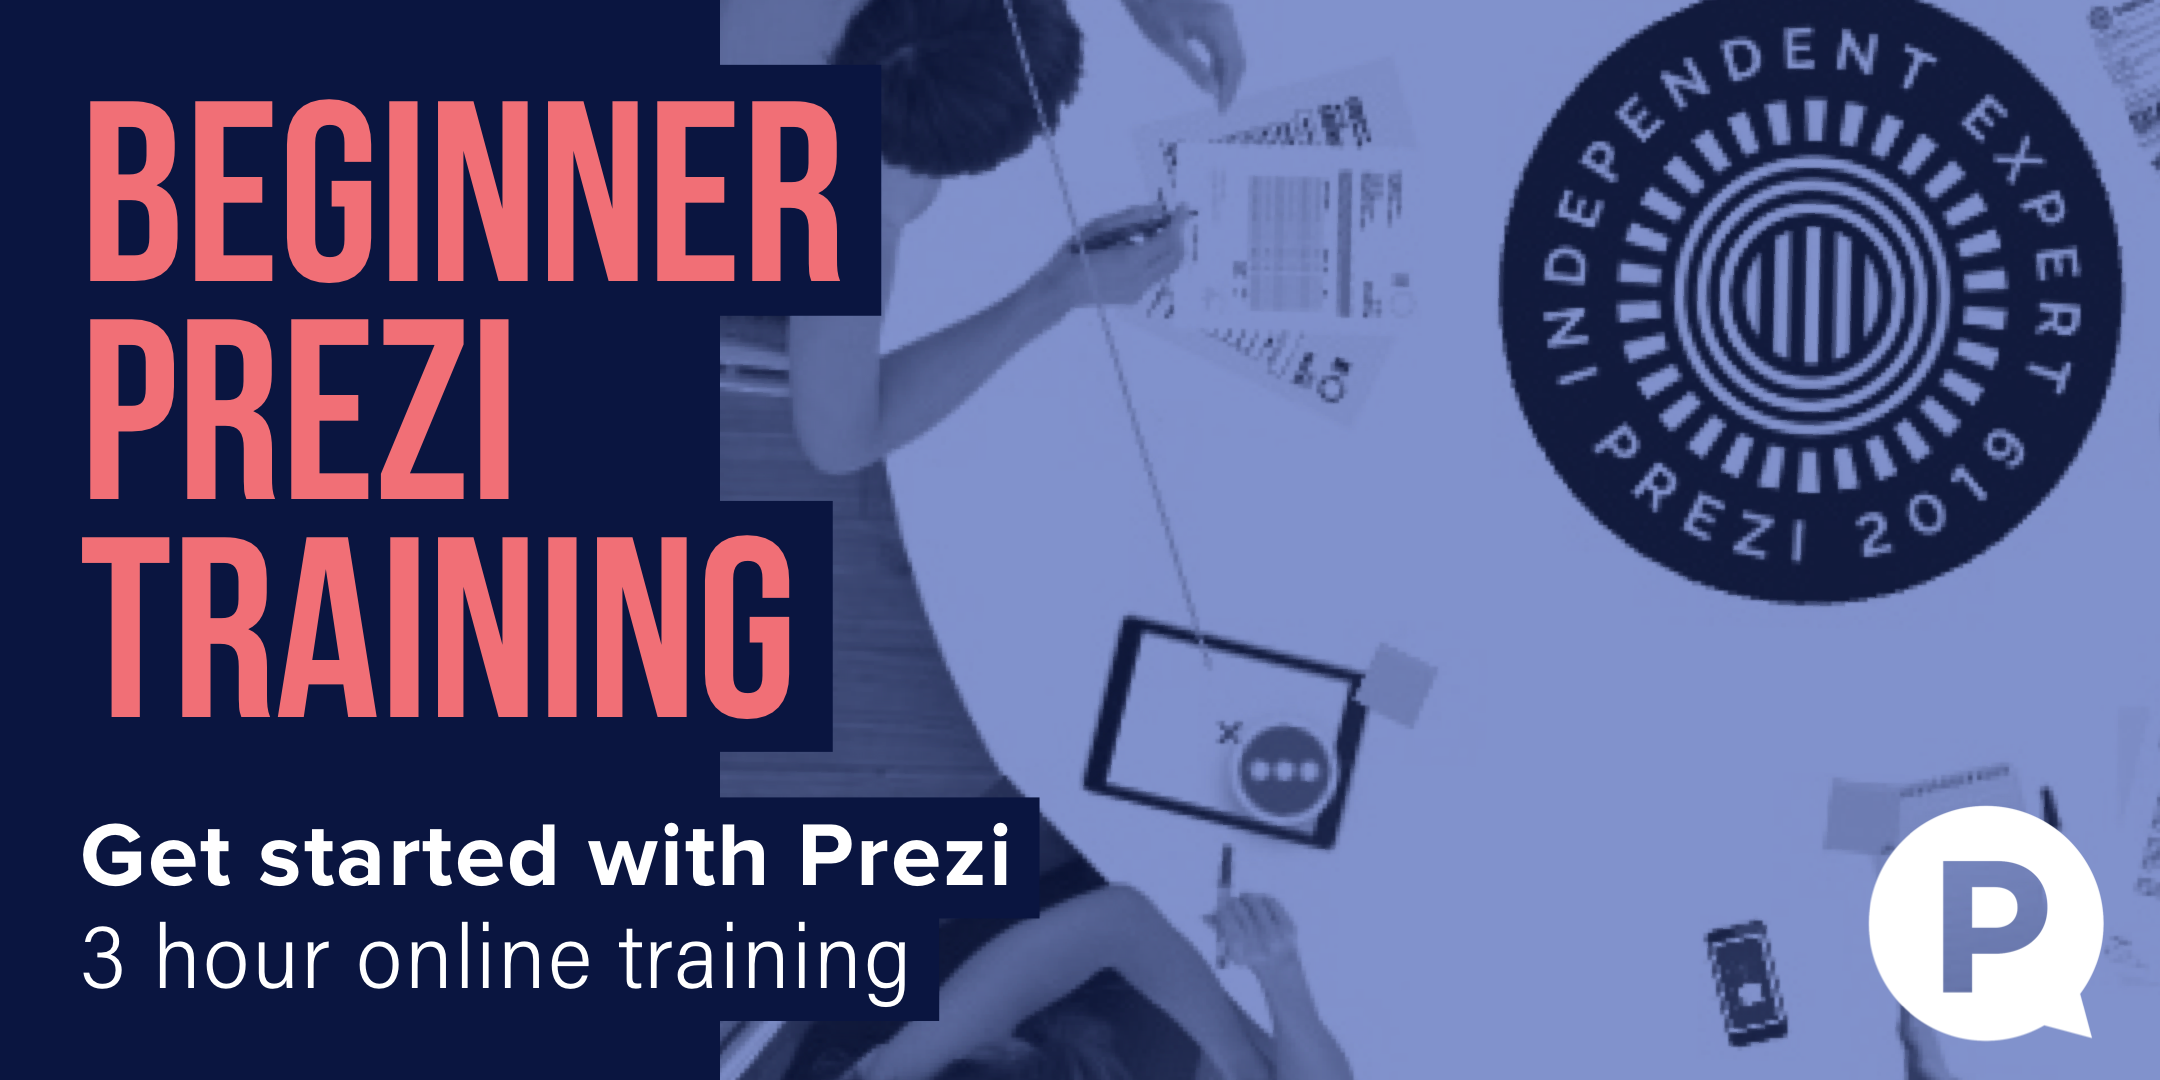 Prezi training online